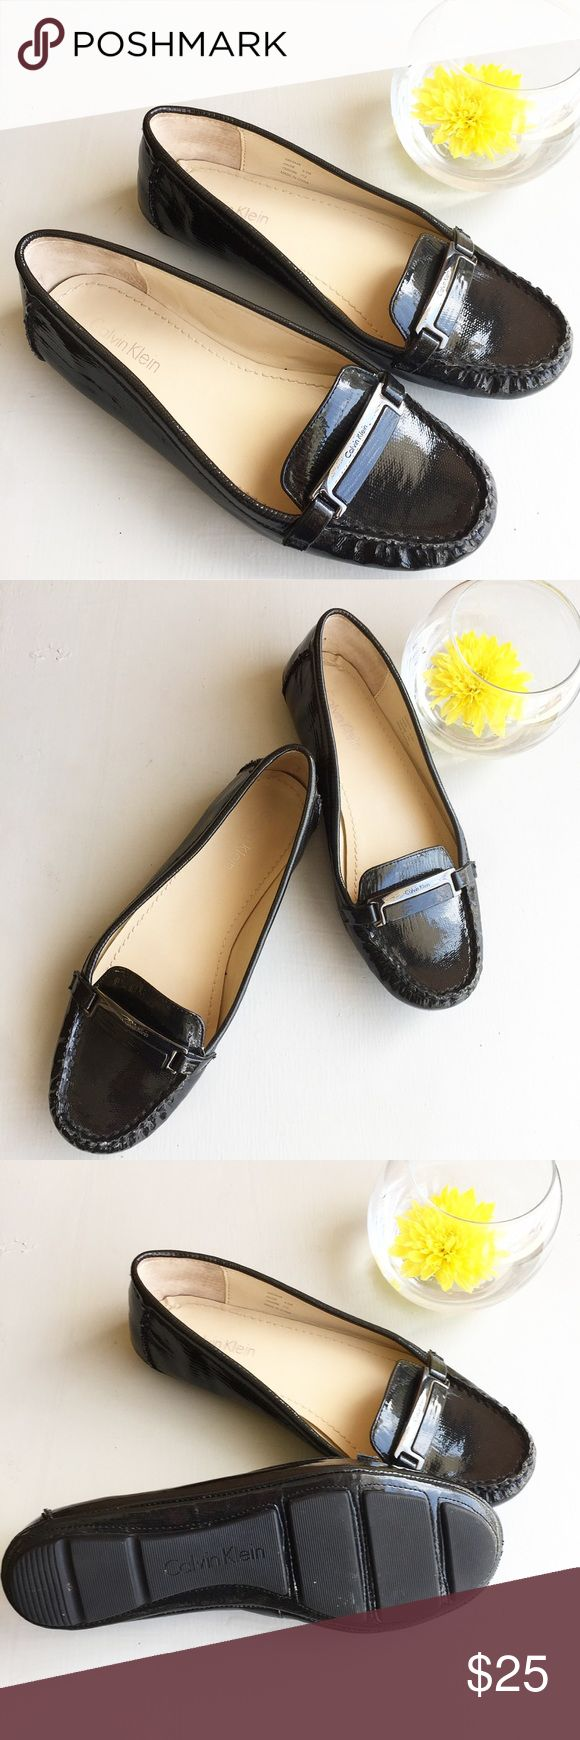 Calvin Klein black loafers Calvin Klein black loafers. In mint condition, like new. Come from a pet and smoke free home. Calvin Klein Shoes Flats & Loafers